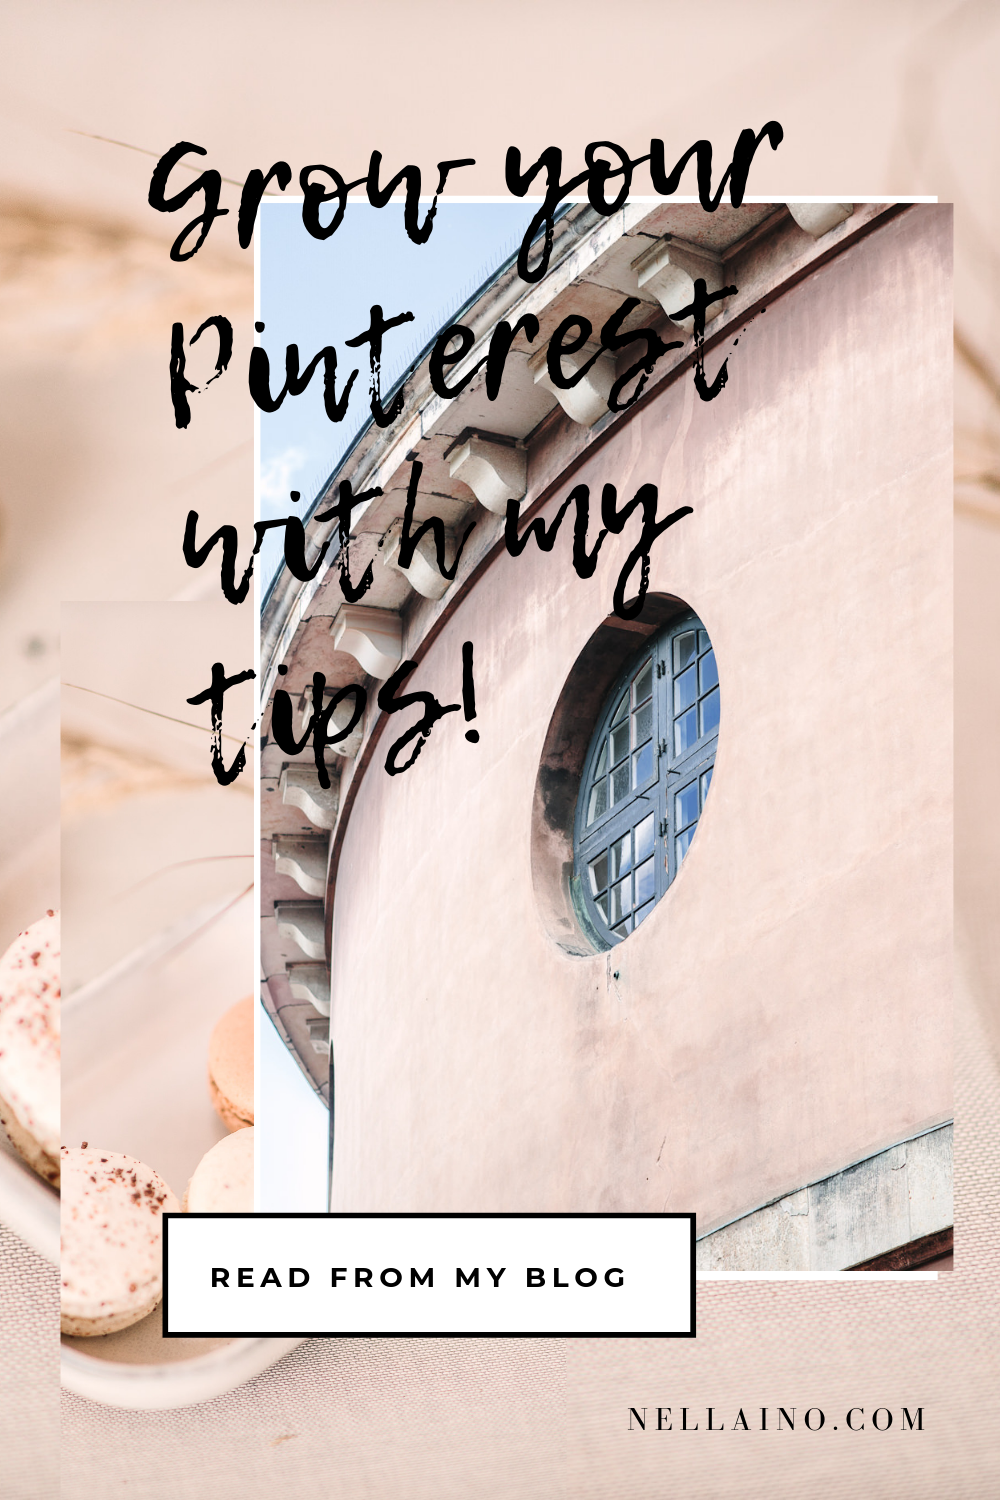 Grow your Pinterest traffic and create Pinterest marketing plan with Nellaino. Check out the blog post and create your Pinterest plan now. www.nellaino.com #pinterestplan #pinterestmarketing.png